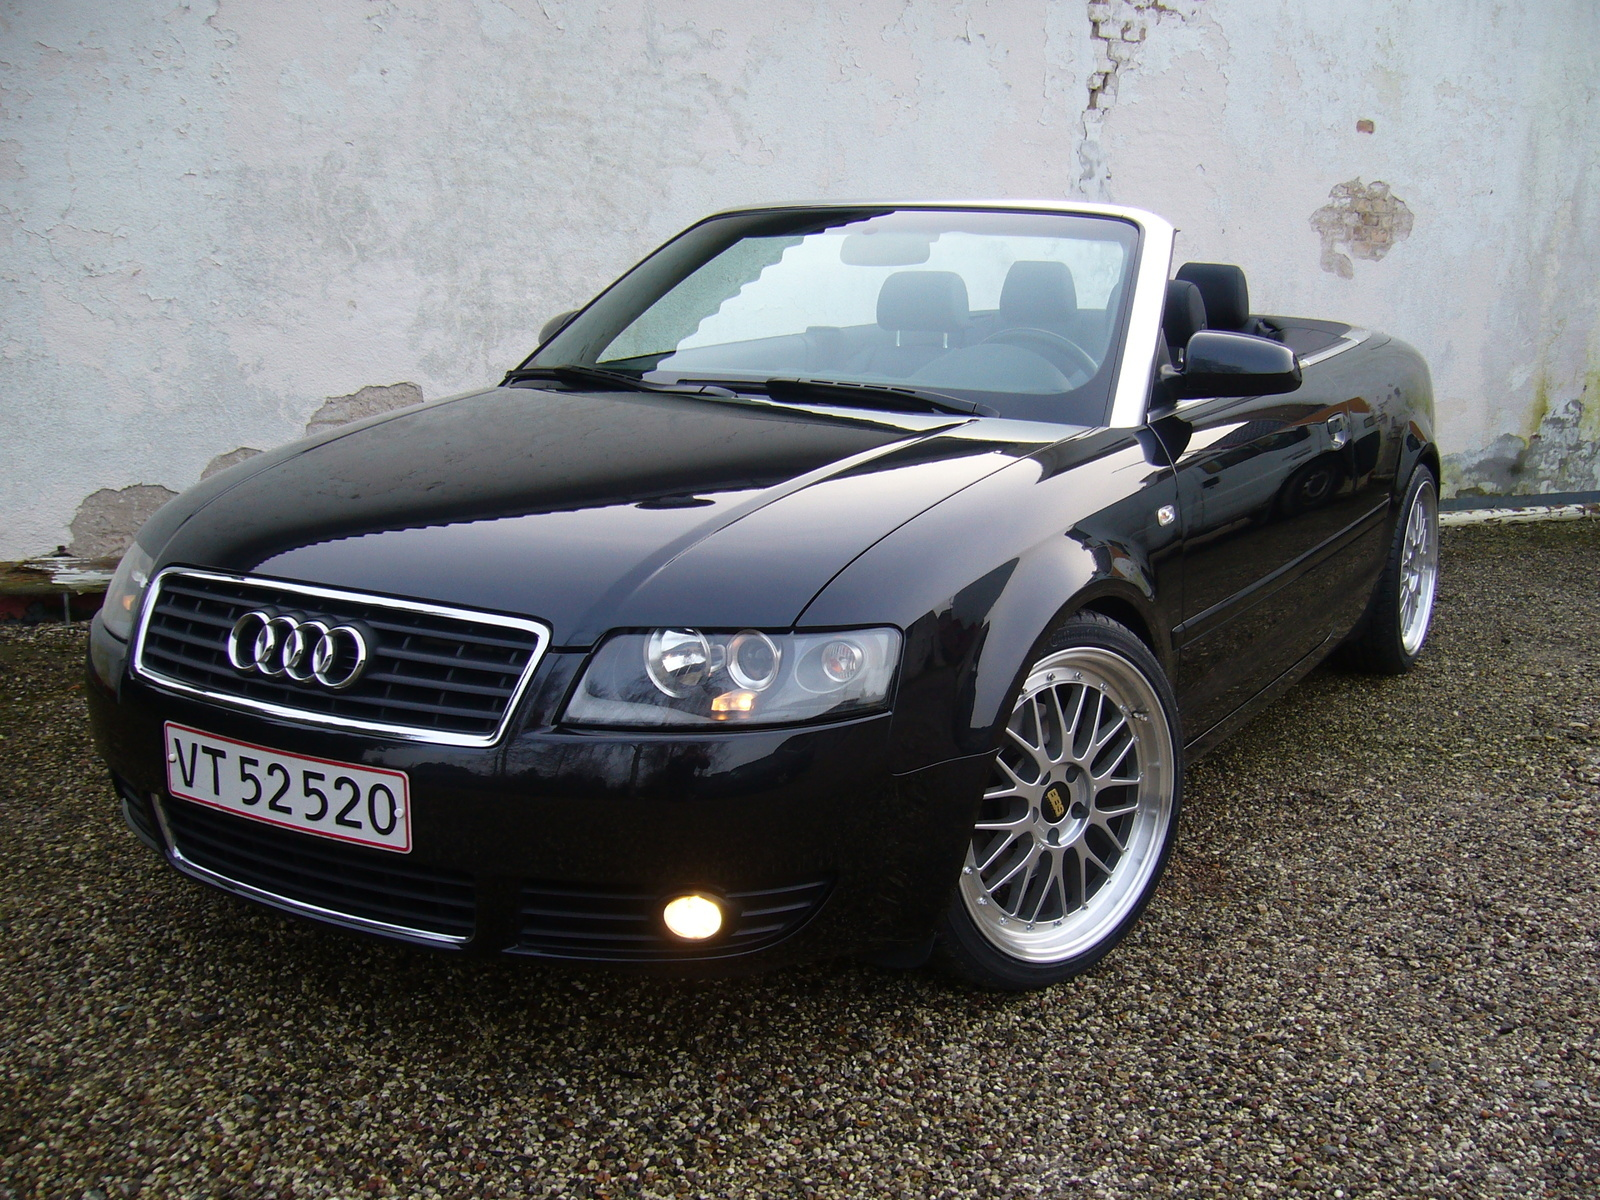 Audi S Overview CarGurus - 2004 audi s4 review